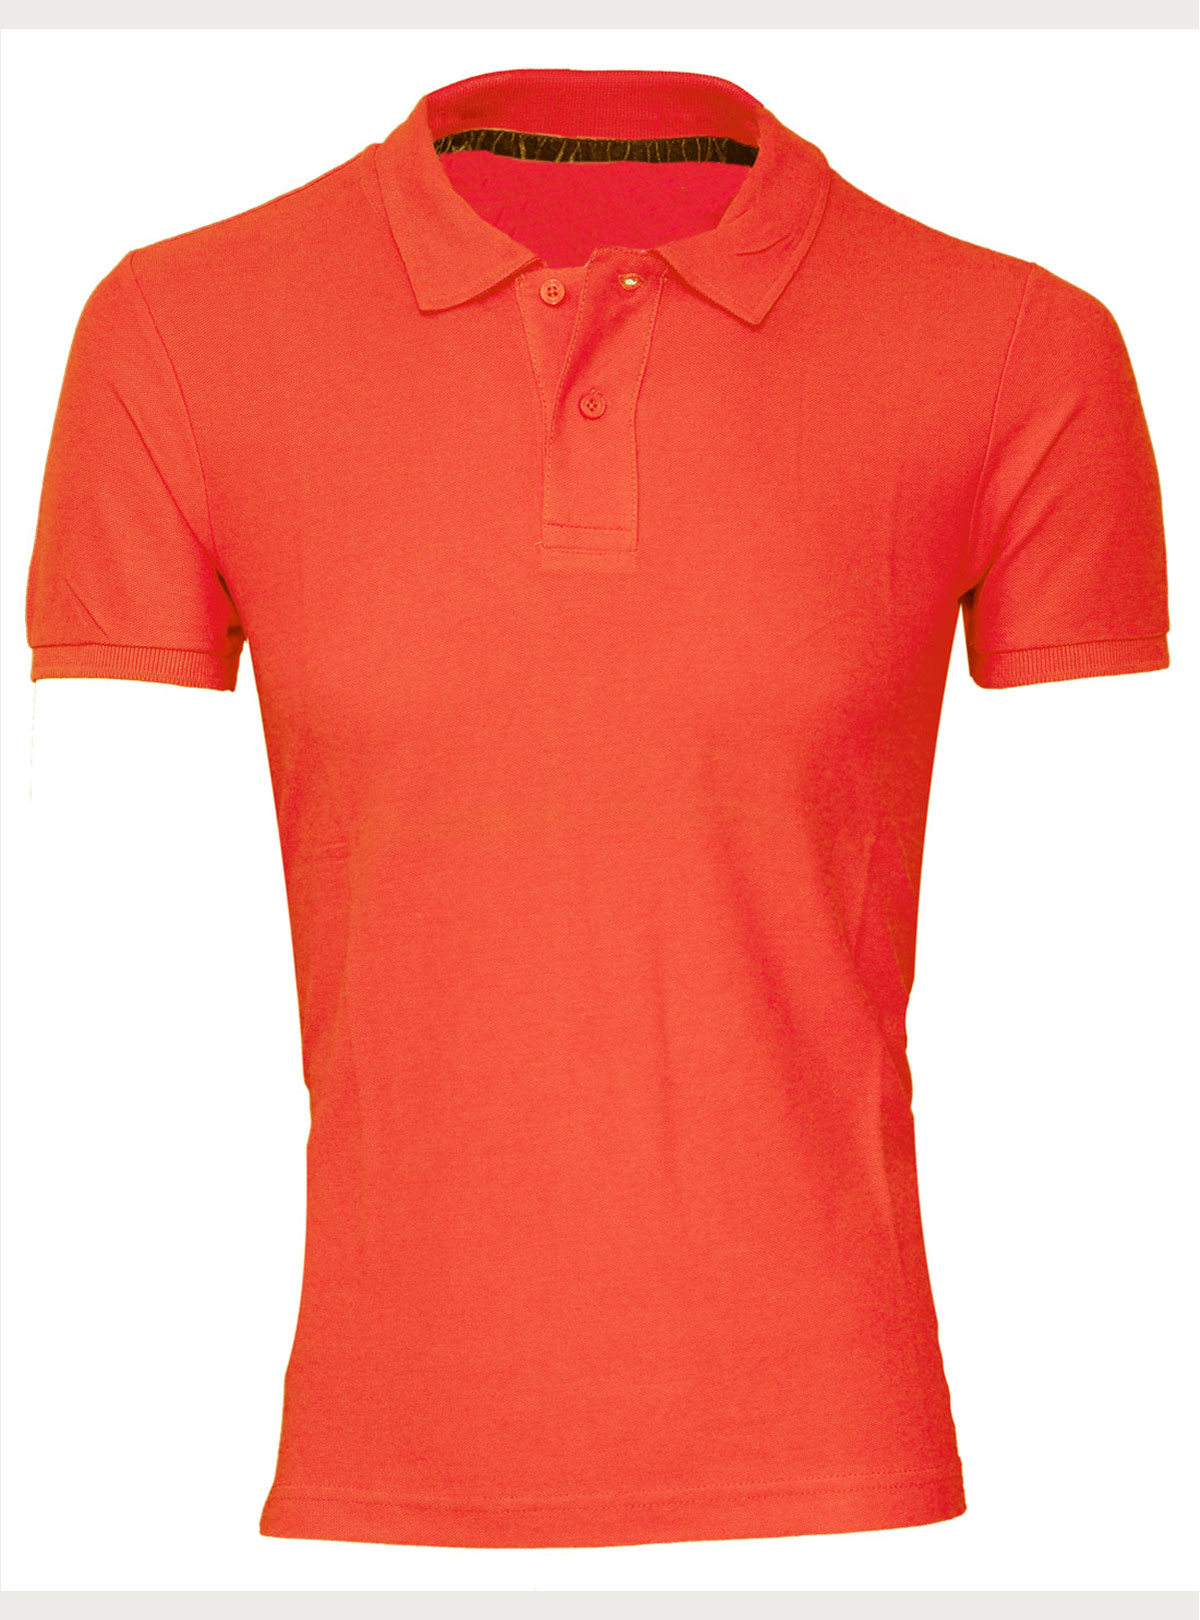 STYLISH POLO T-SHIRT BY-BASICS